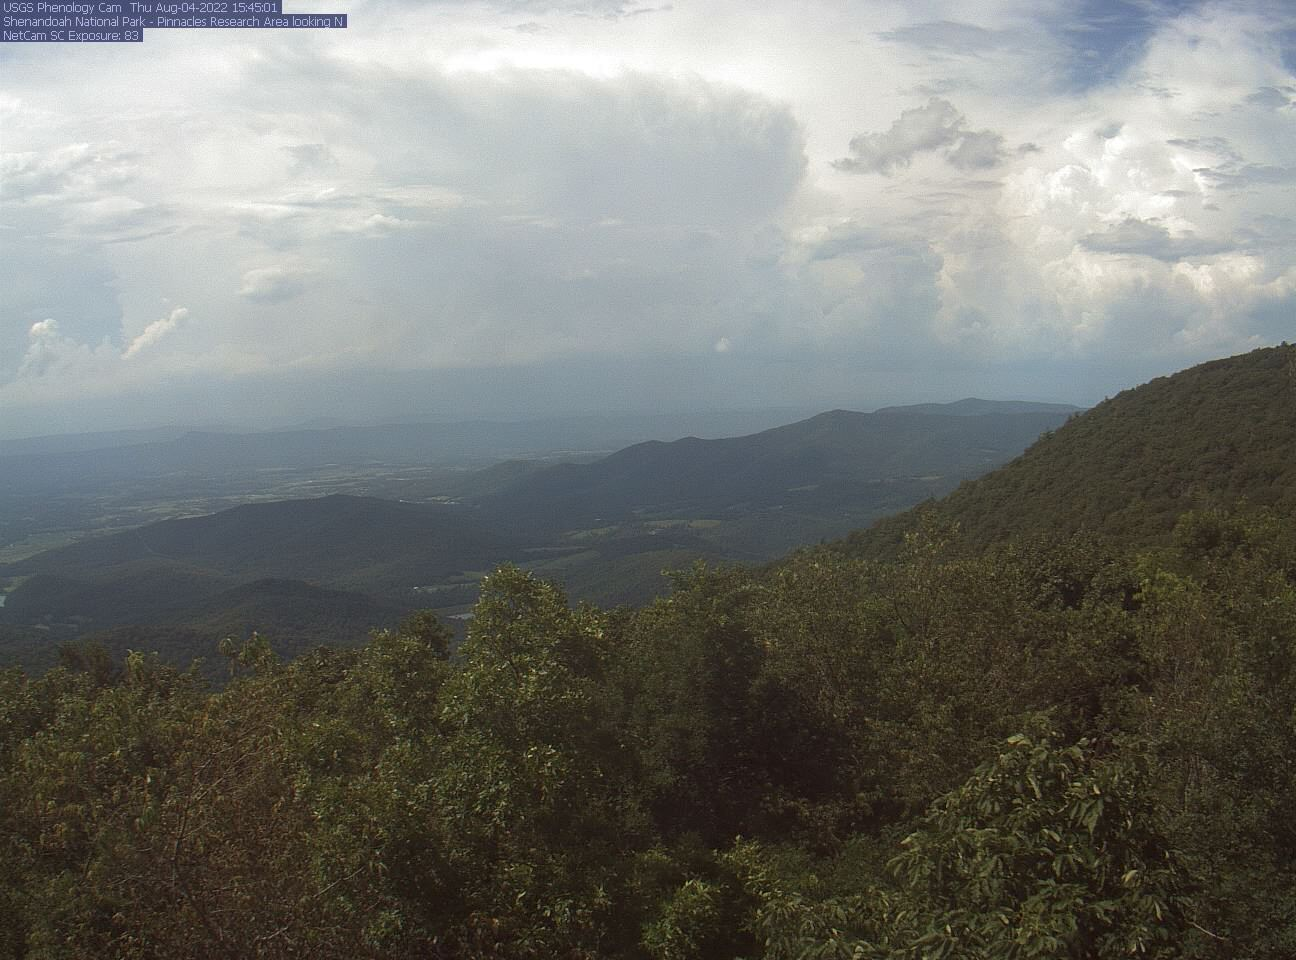 Shenandoah National Park Webcam